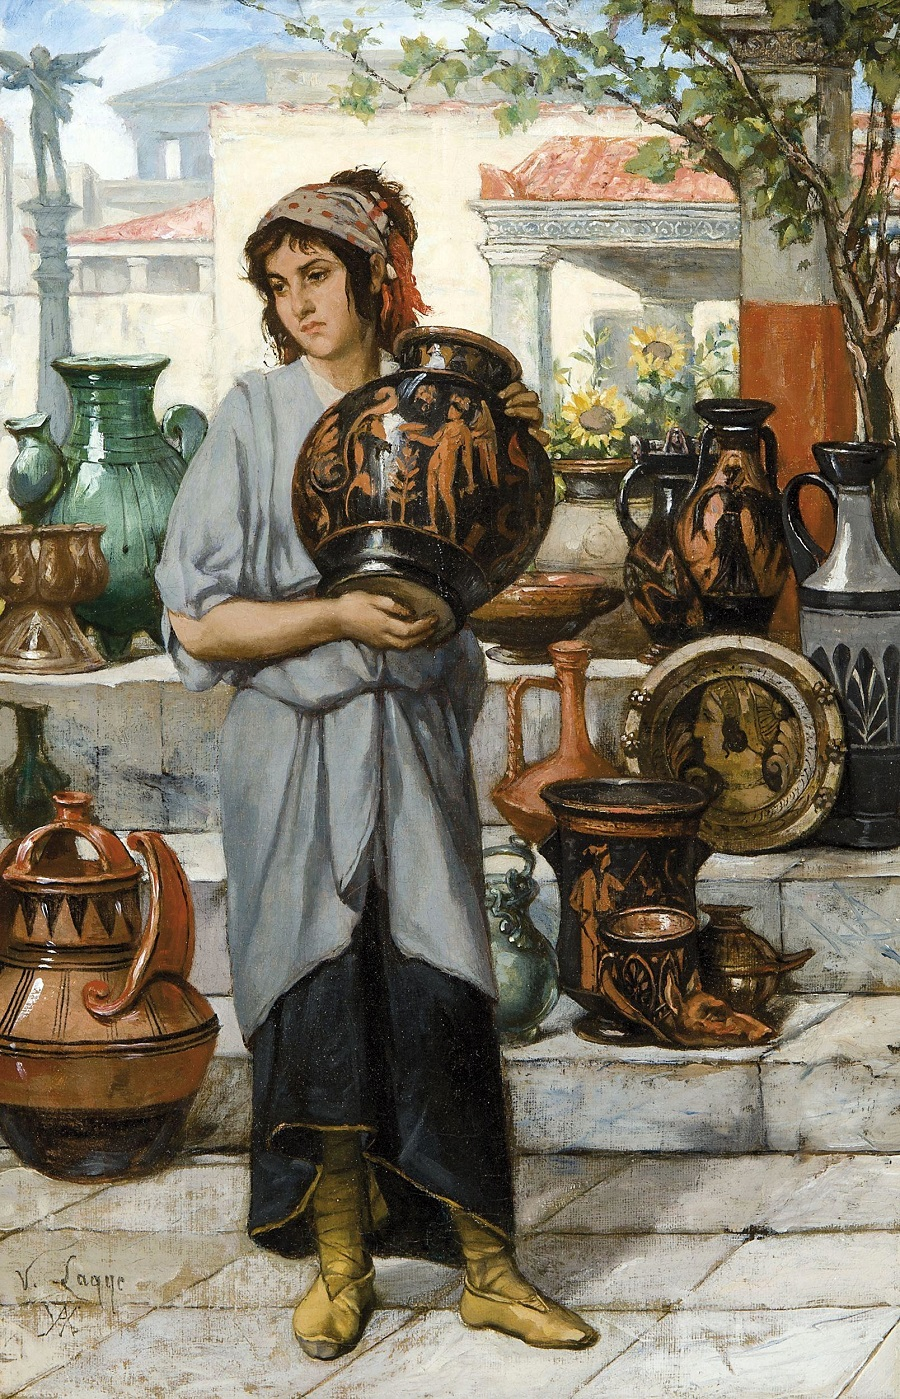 Young woman selling Greek pottery